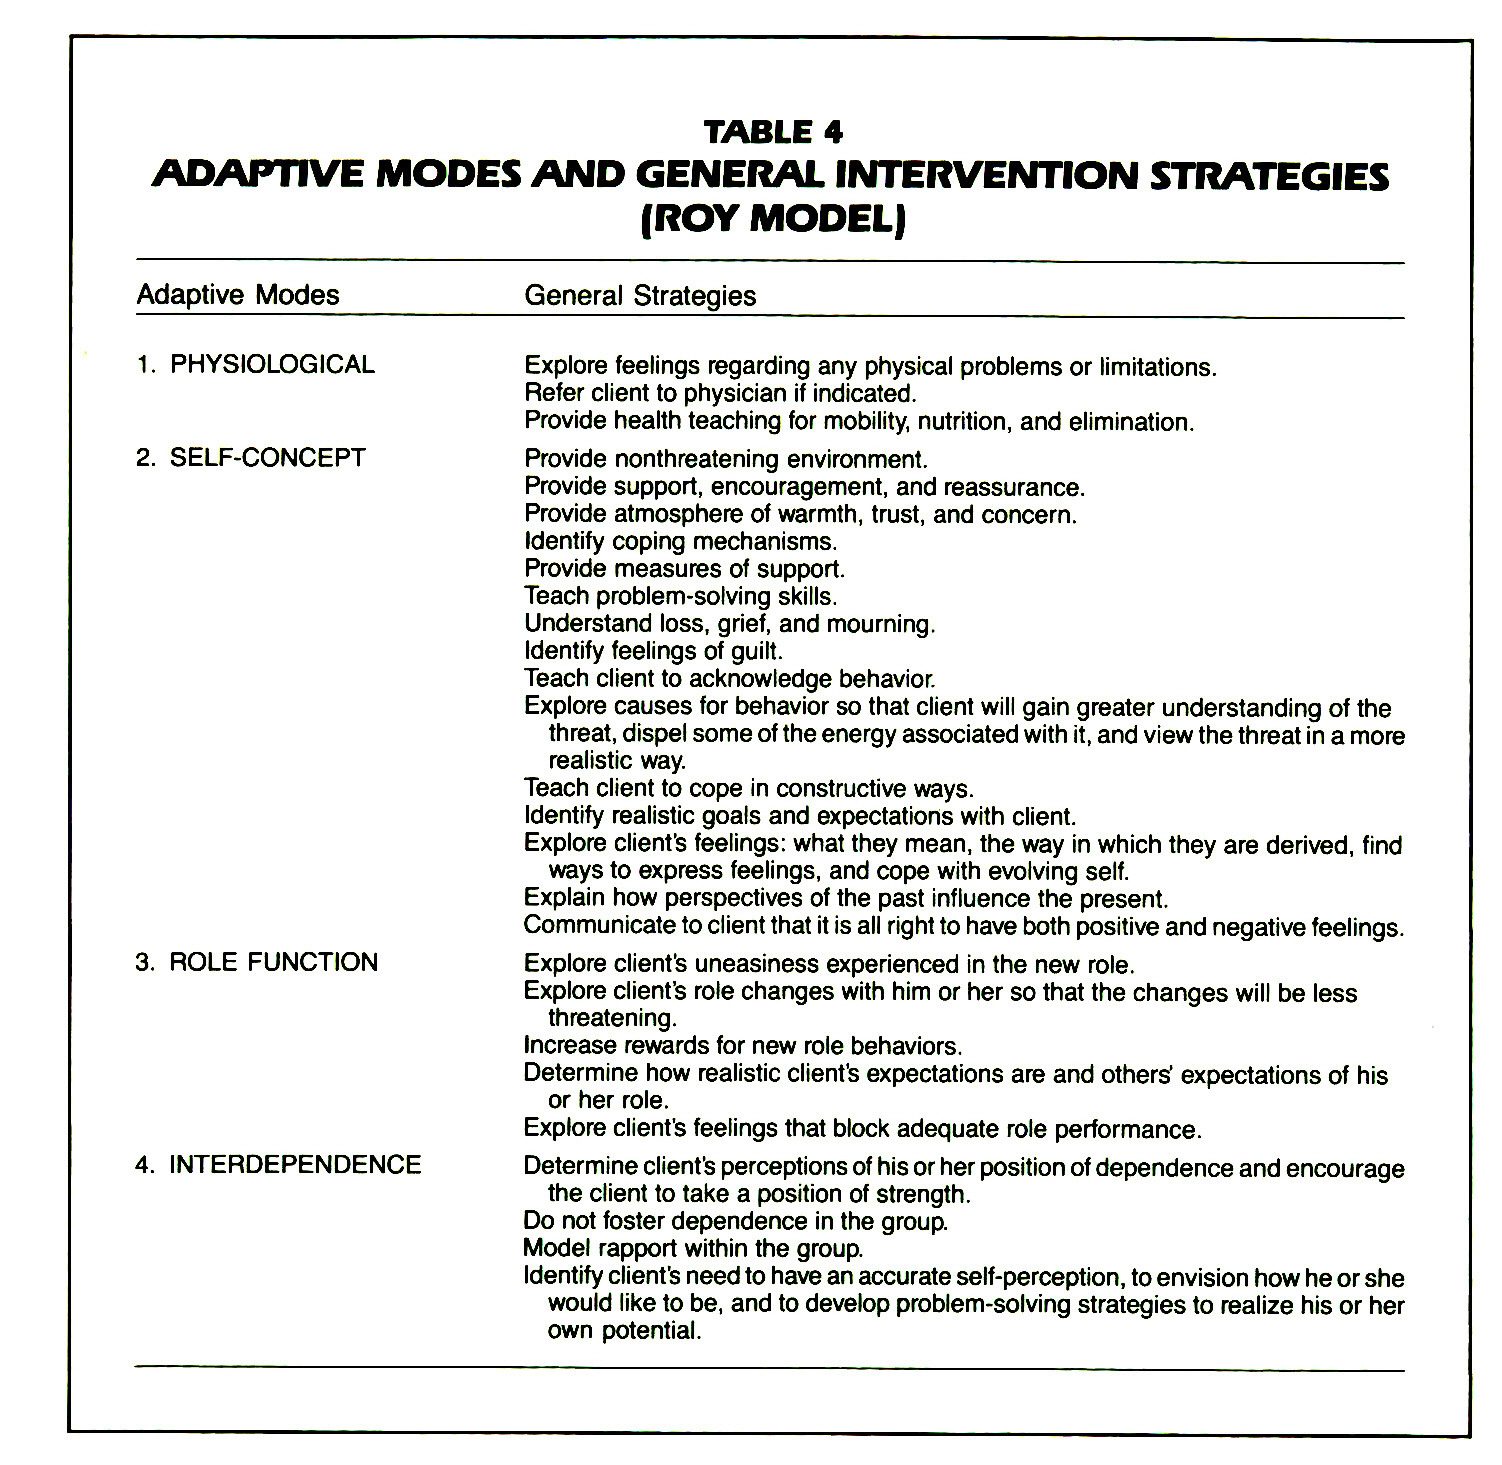 TABLE 4ADAPTIVE MODES AND GENERAL INTERVENTION STRATEGIES (ROY MODEL)